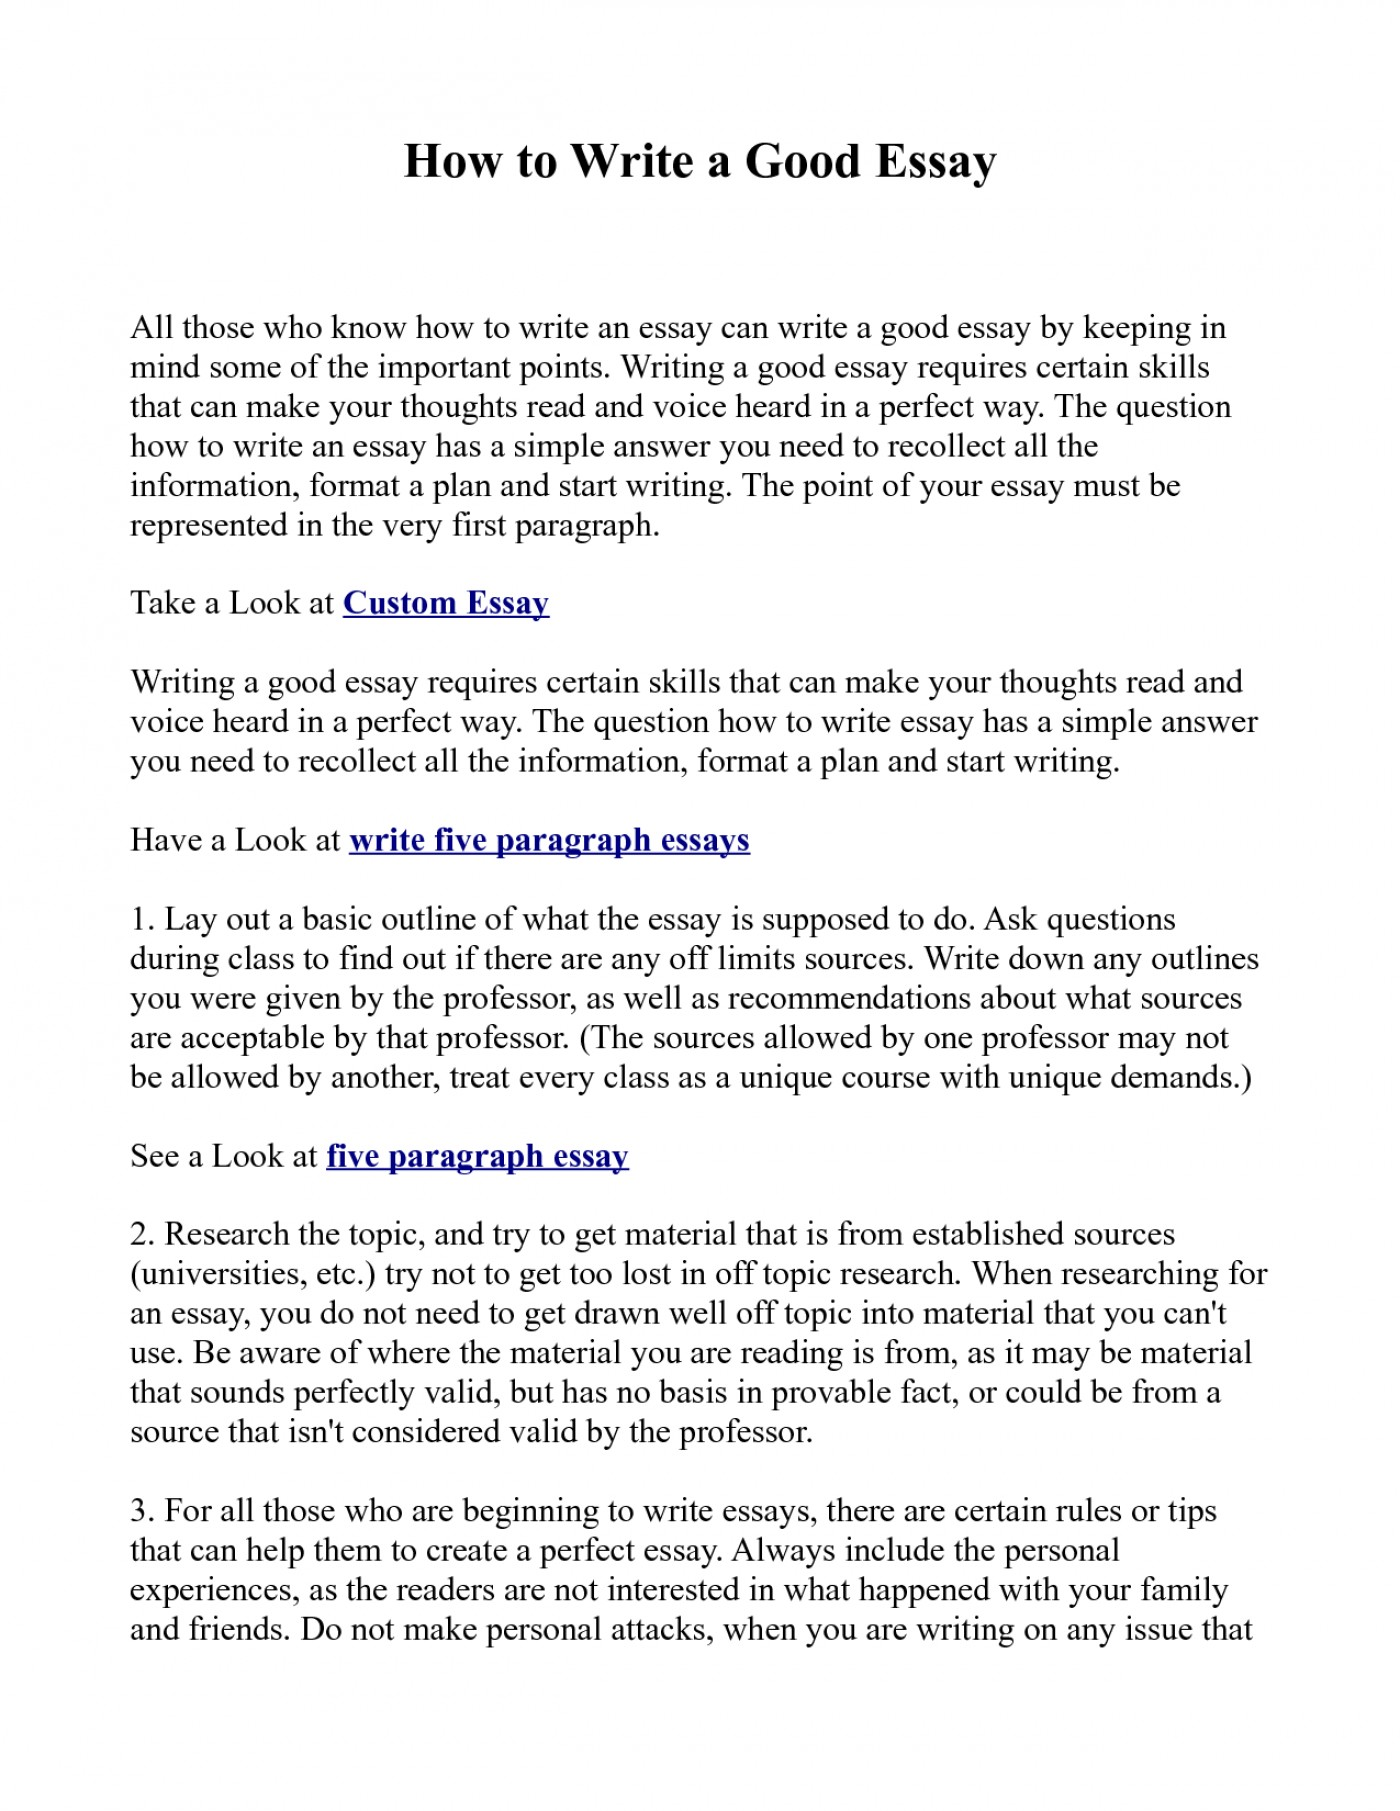 007 Ex1id5s6cl Essay Example How To Start Amazing An Analysis On A Book Ways With Question About Two Books 1400